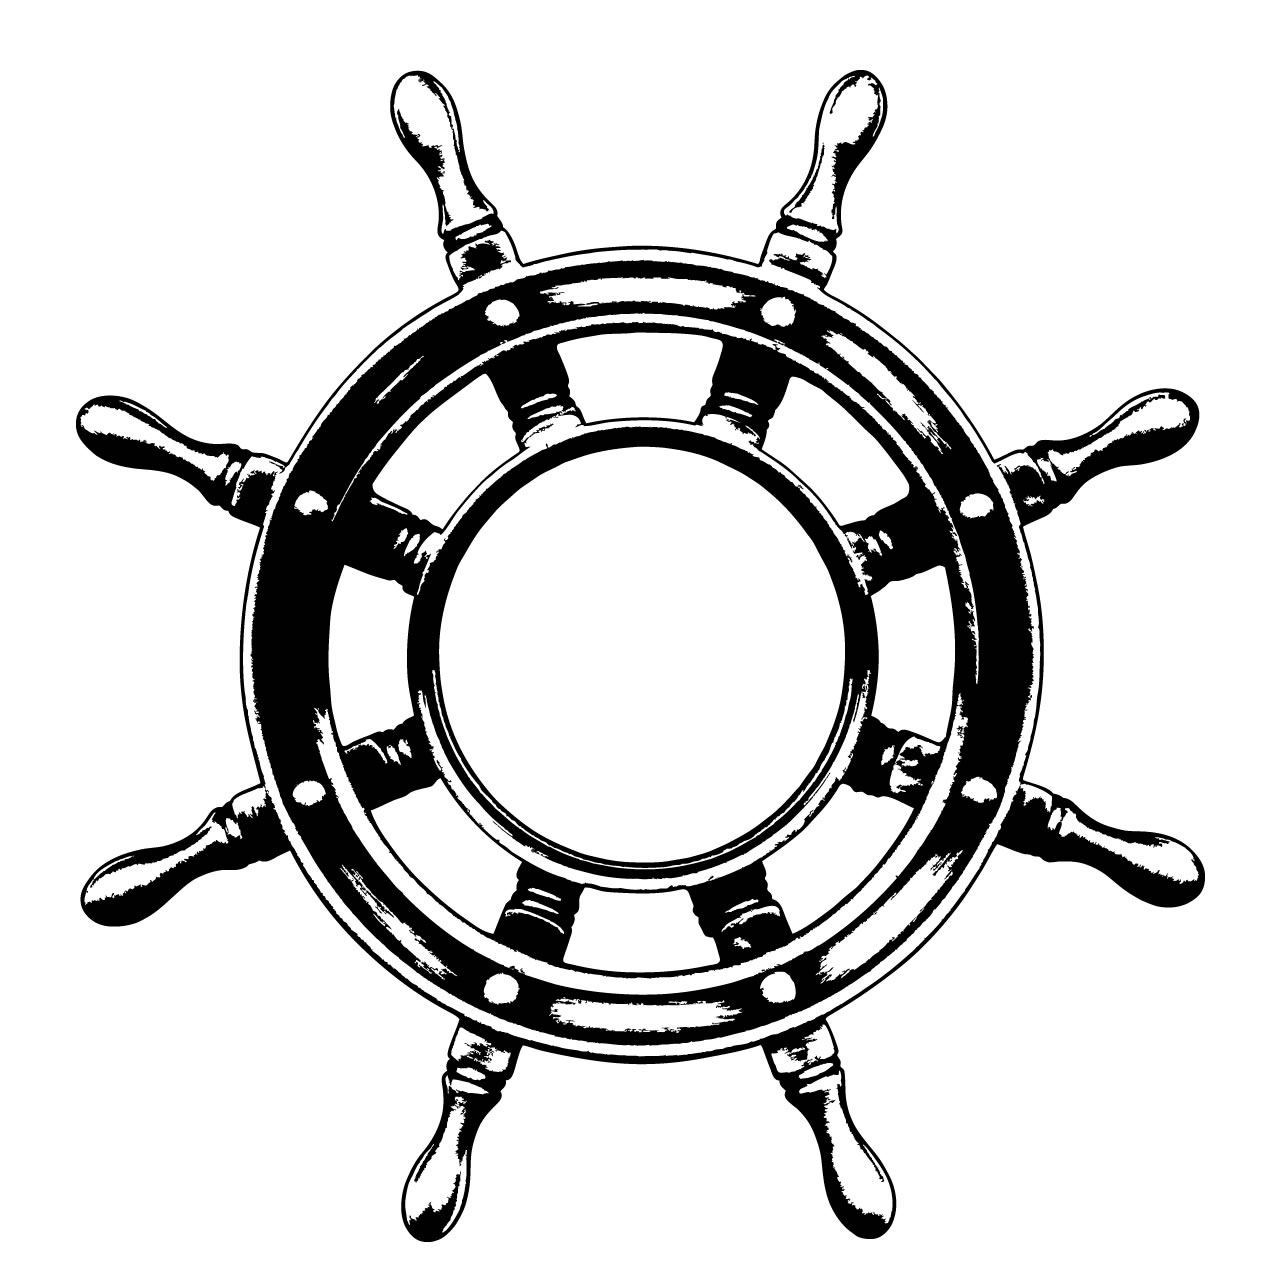 Drawn anchor ship wheel WHEEL STICKER PIRATE Details PIRATE